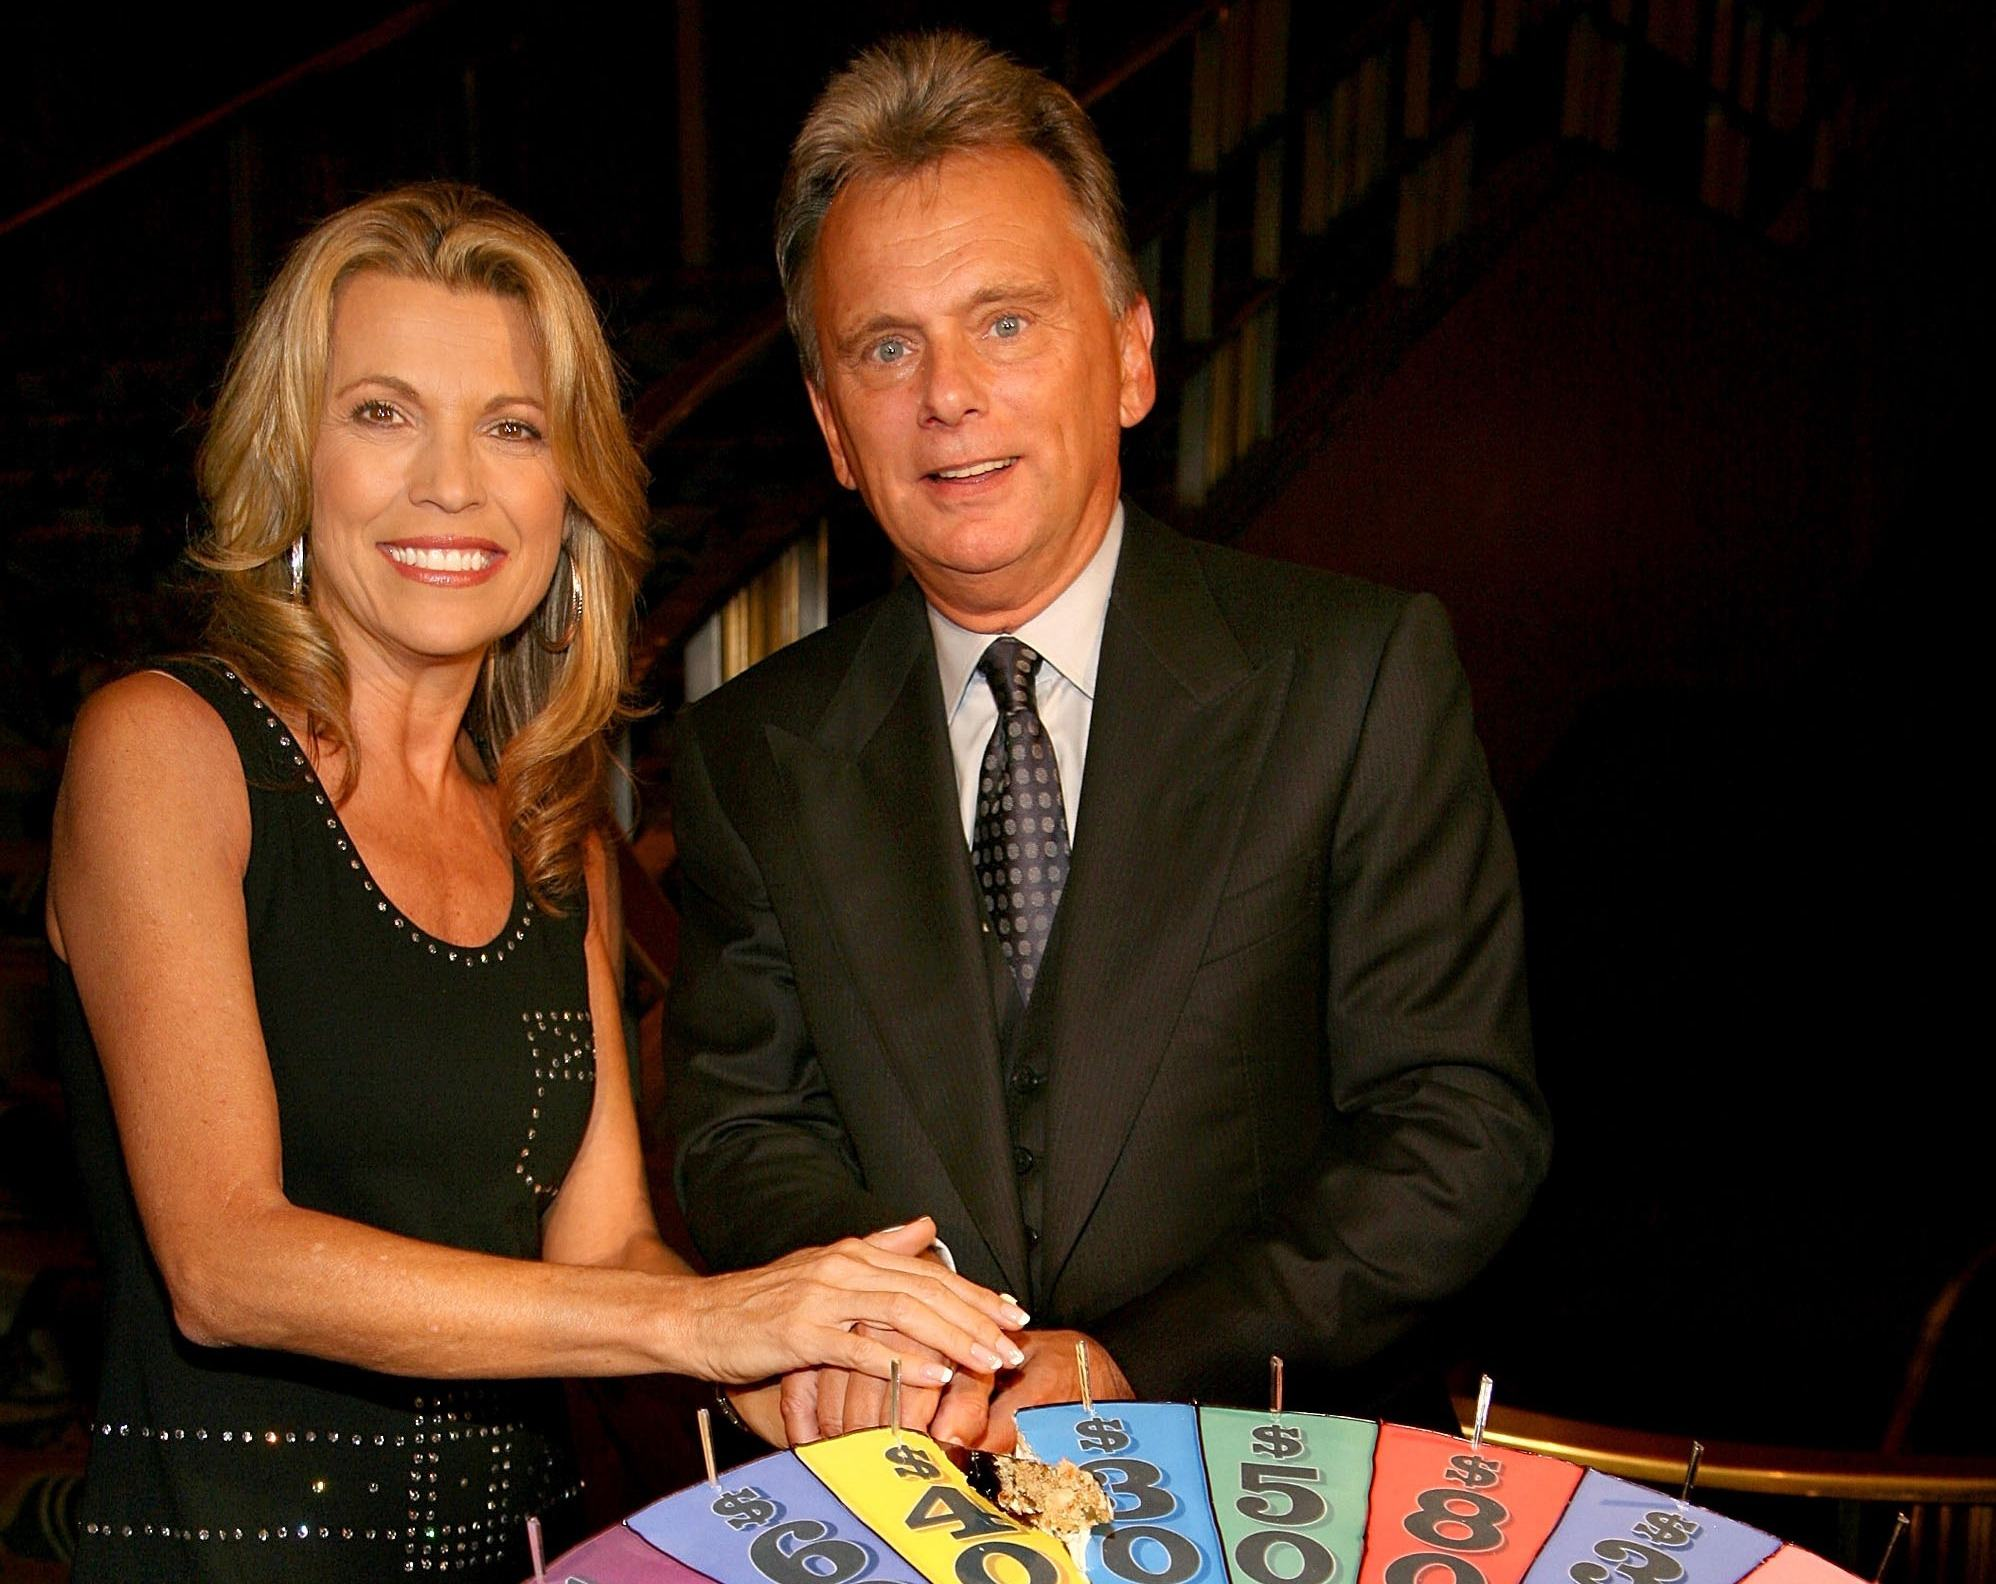 Vanna White and Pat Sajak